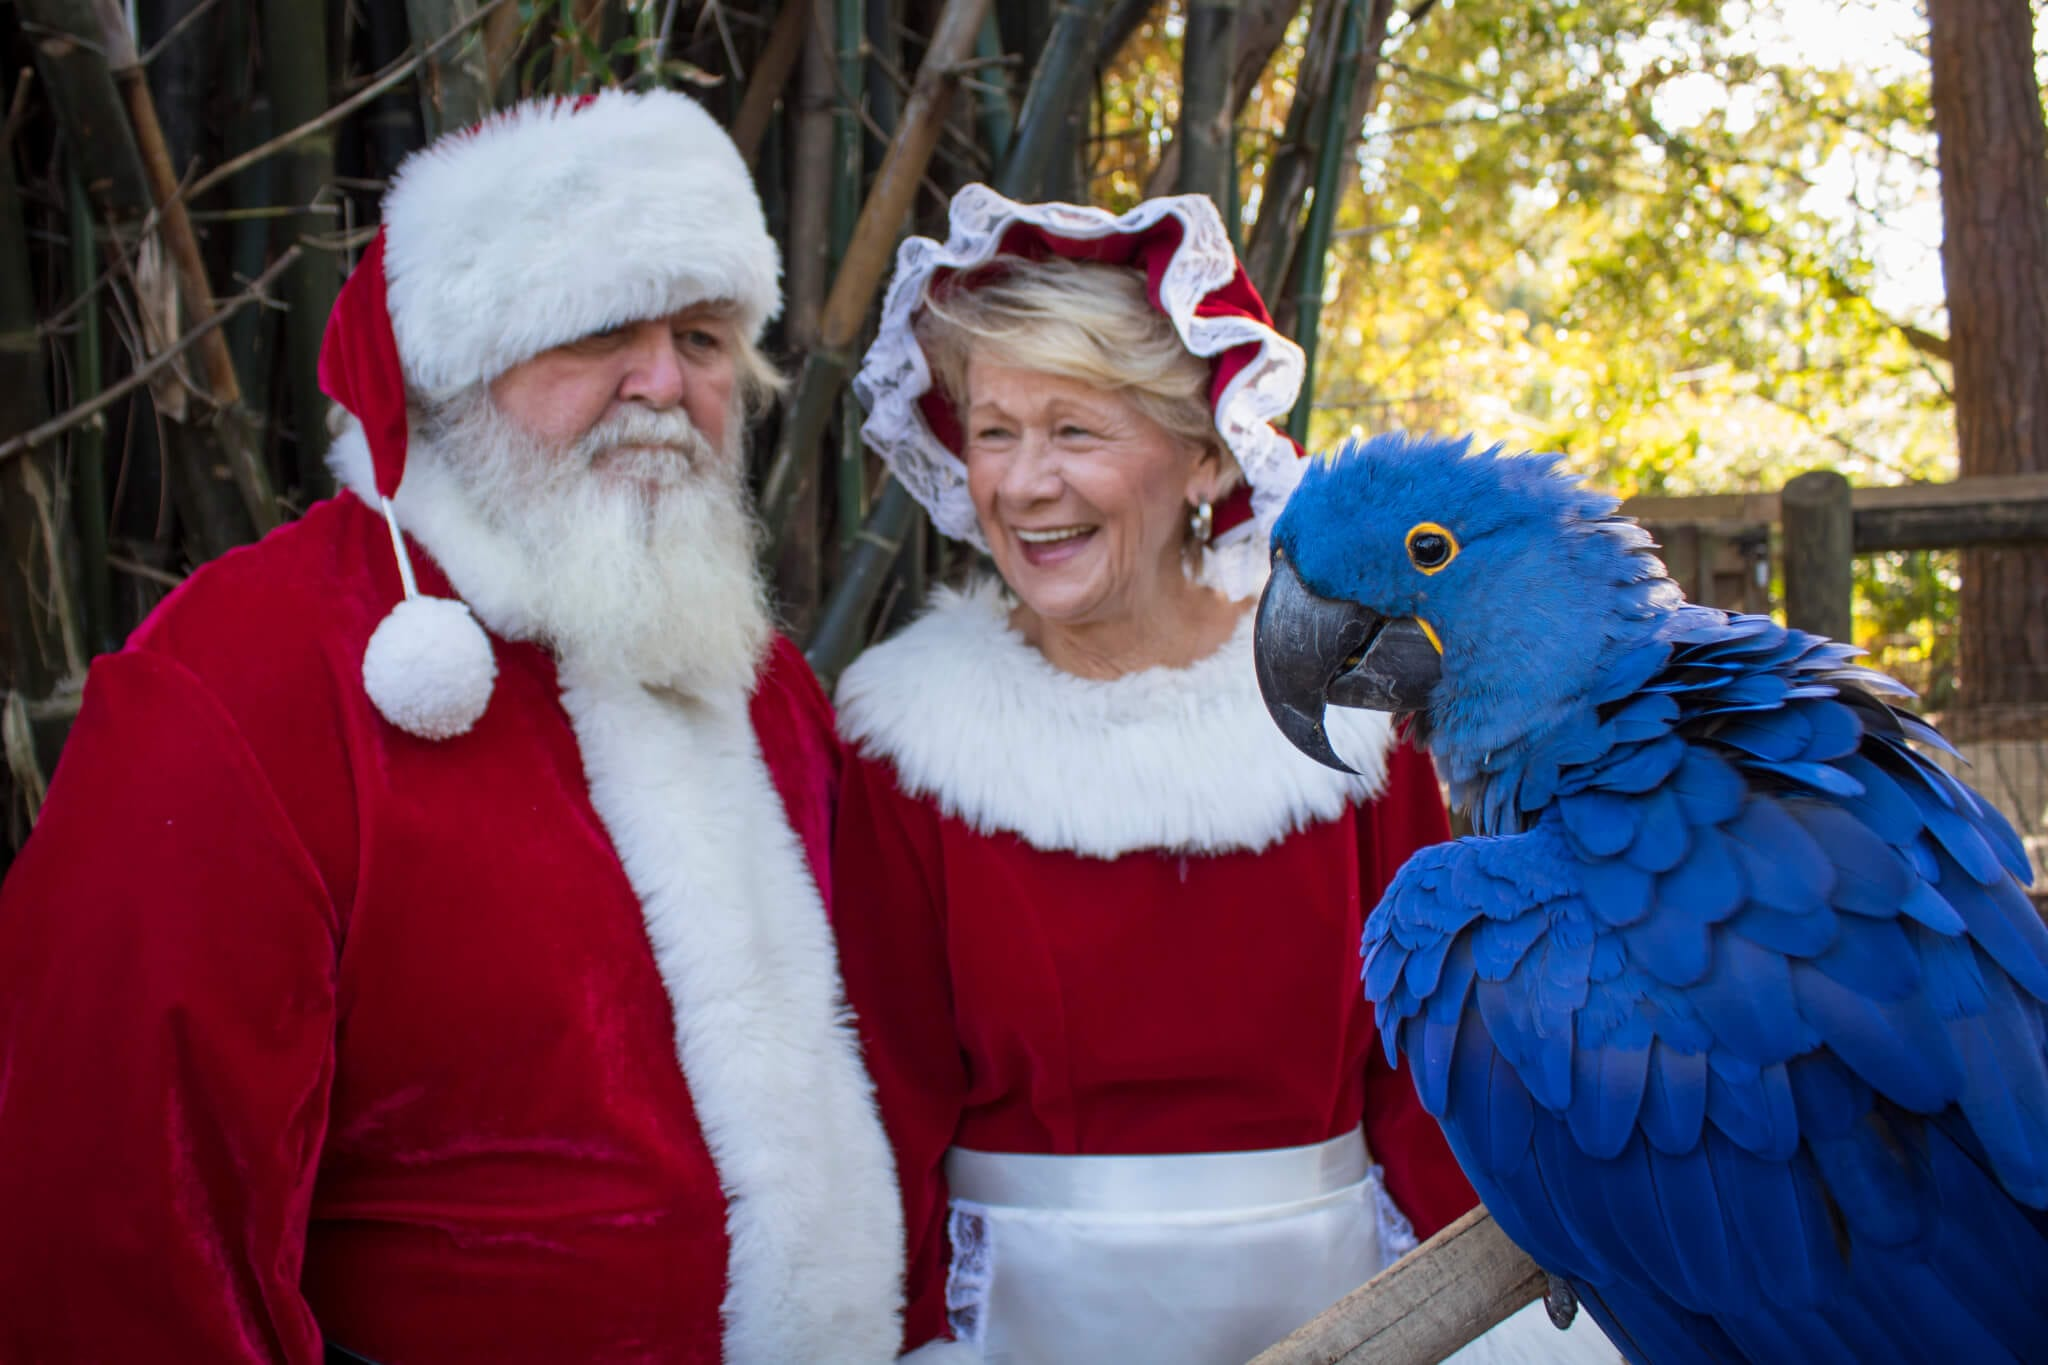 Santa and Mrs. Claus with macaw